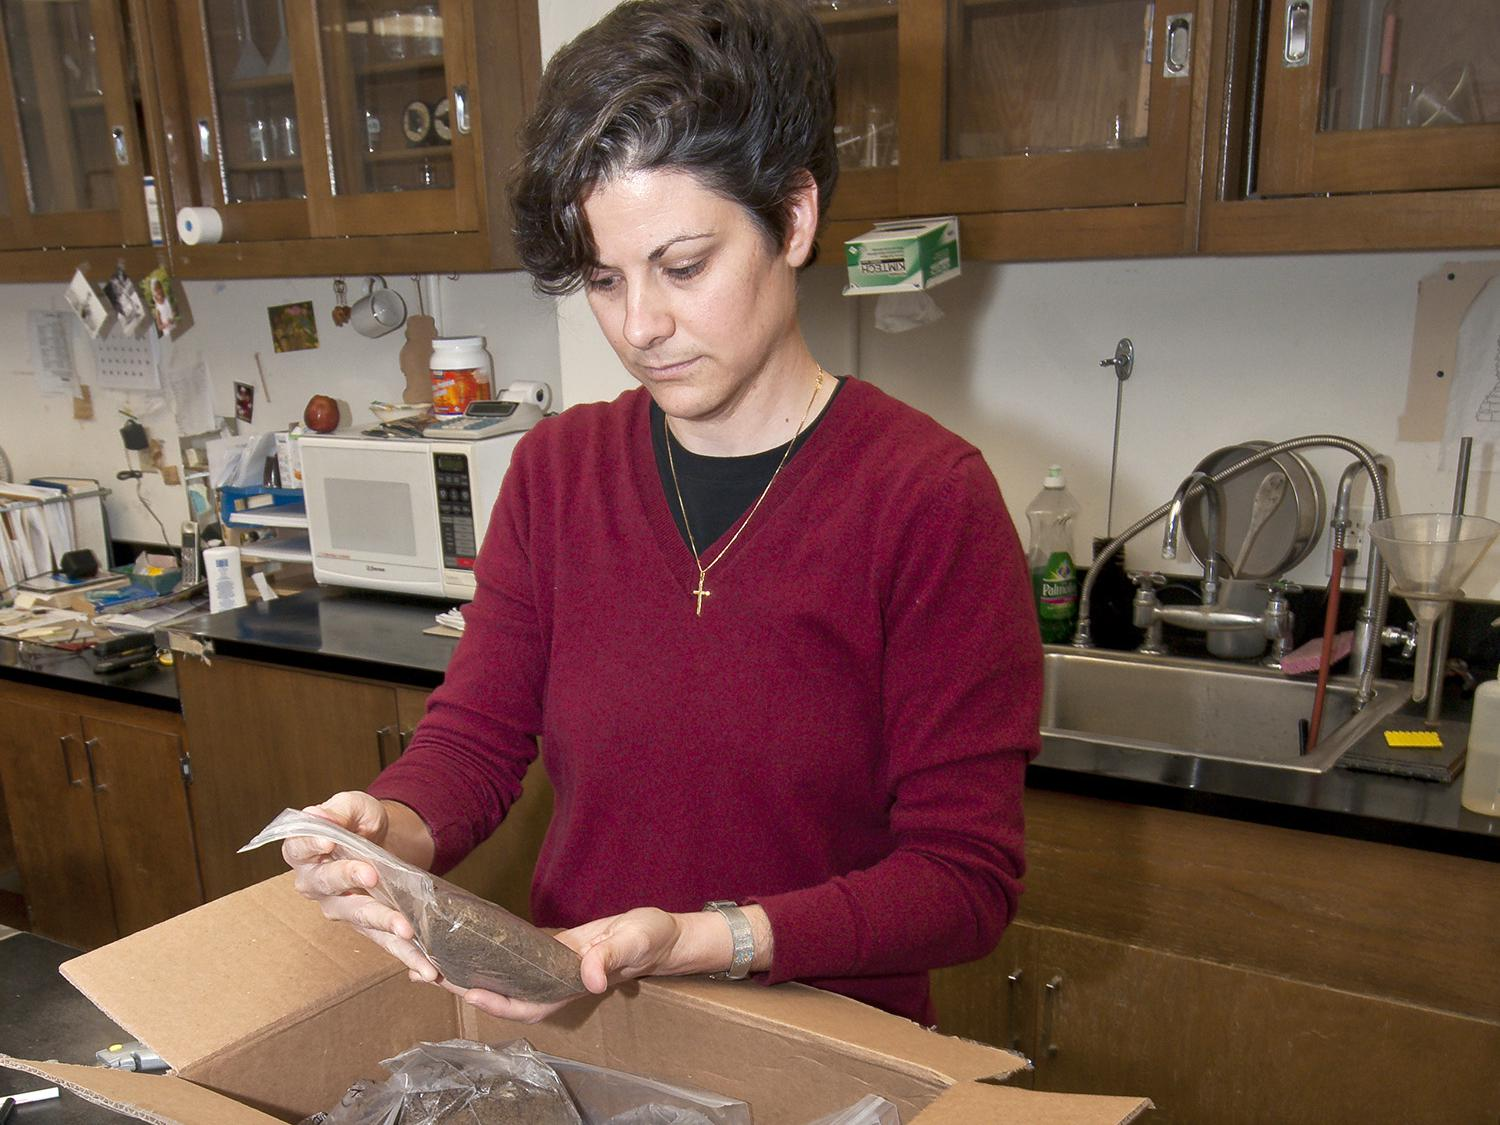 Clarissa Balbalian receives a box of soil samples sent to the MSU Soil Testing and Plant Analysis Lab for evaulation. A proposed management strategy accompanies each set of test results. (Photo by MSU Ag Communications/Scott Corey)